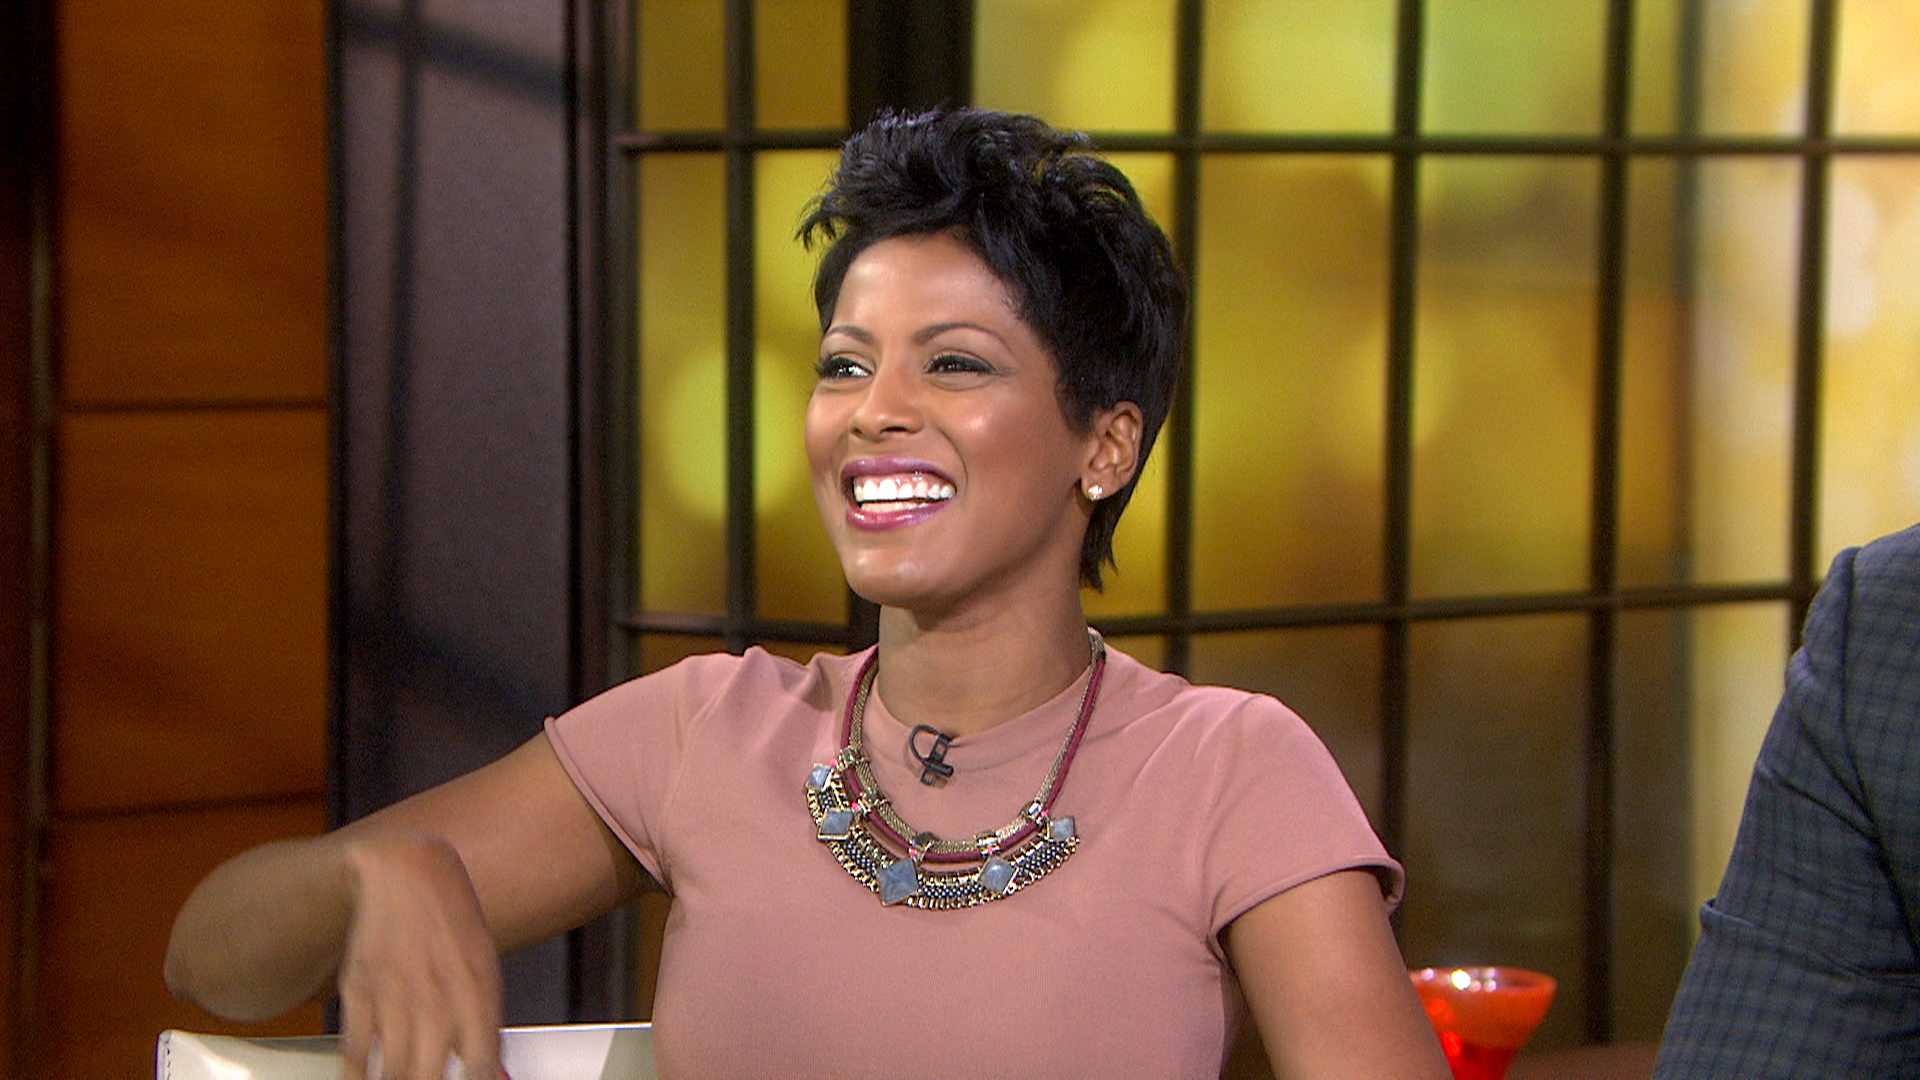 How to get Tamron Hall's stylish necklace that helps benefit breast cancer research